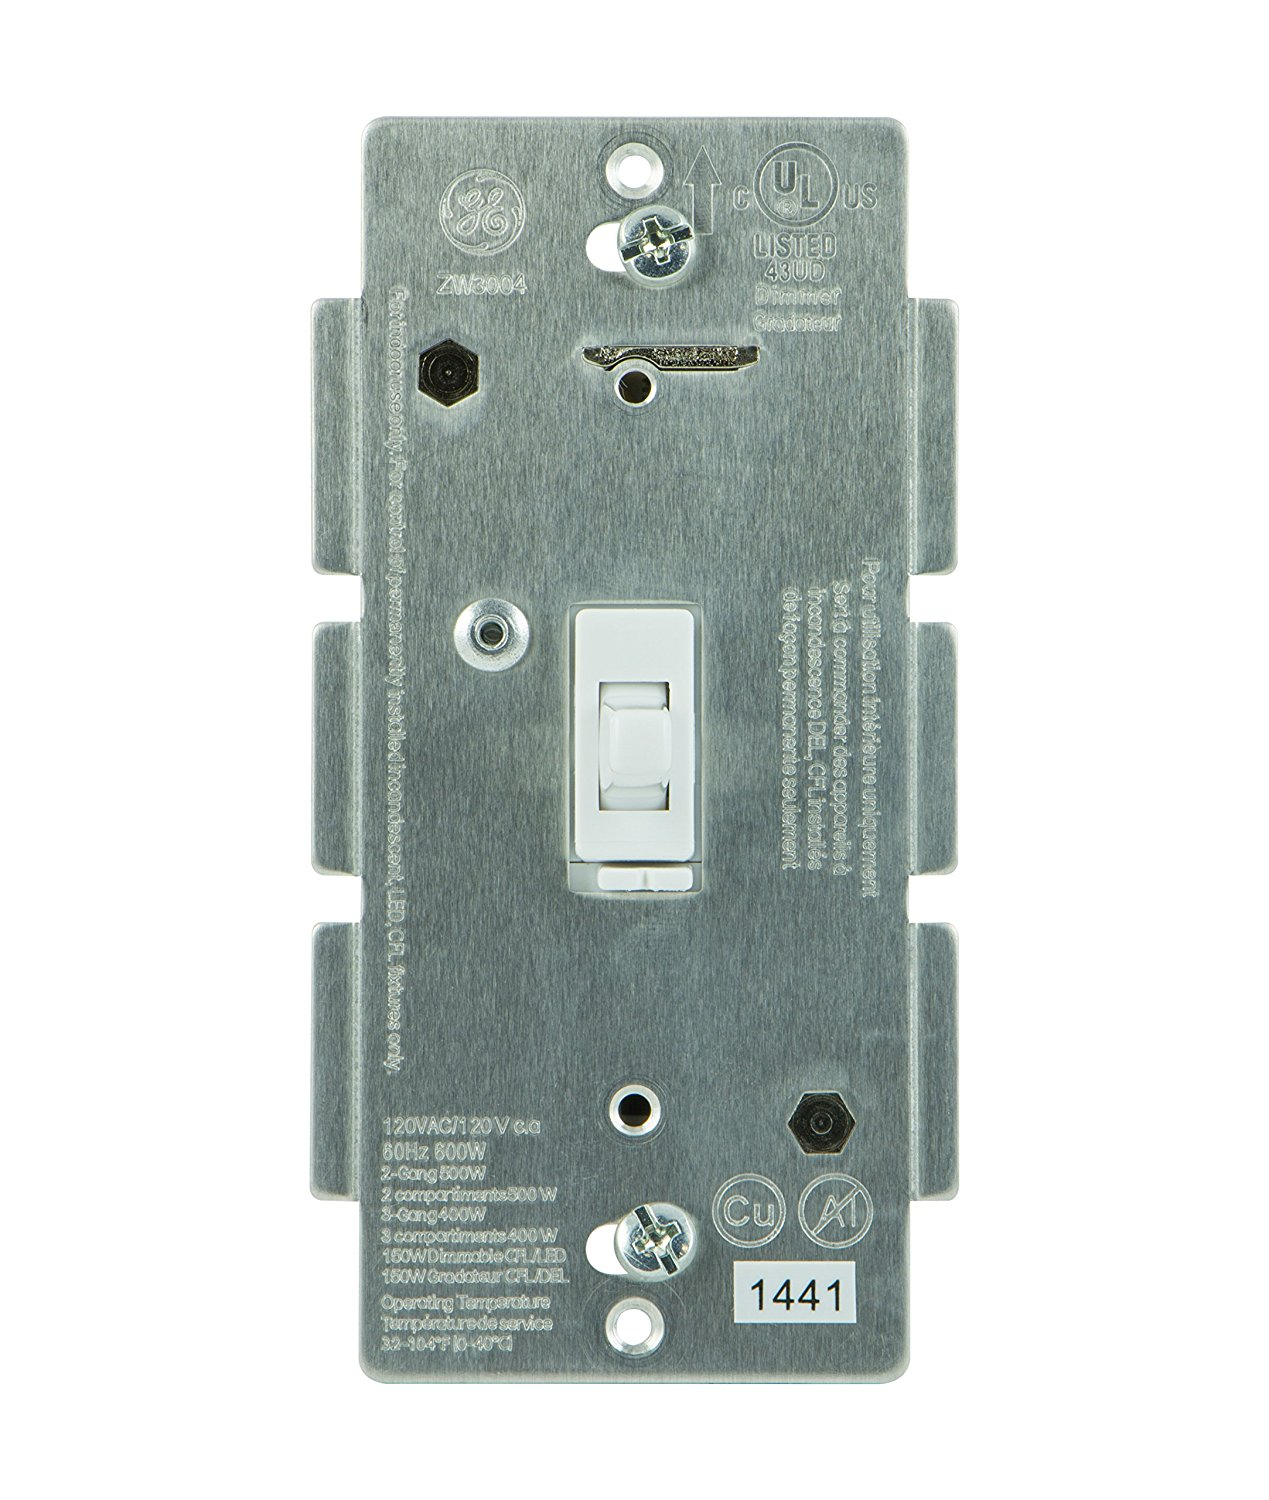 In Wall Smart Toggle Dimmer Wireless Controlled Lightdimmer Indexproductnamezc10 16105295